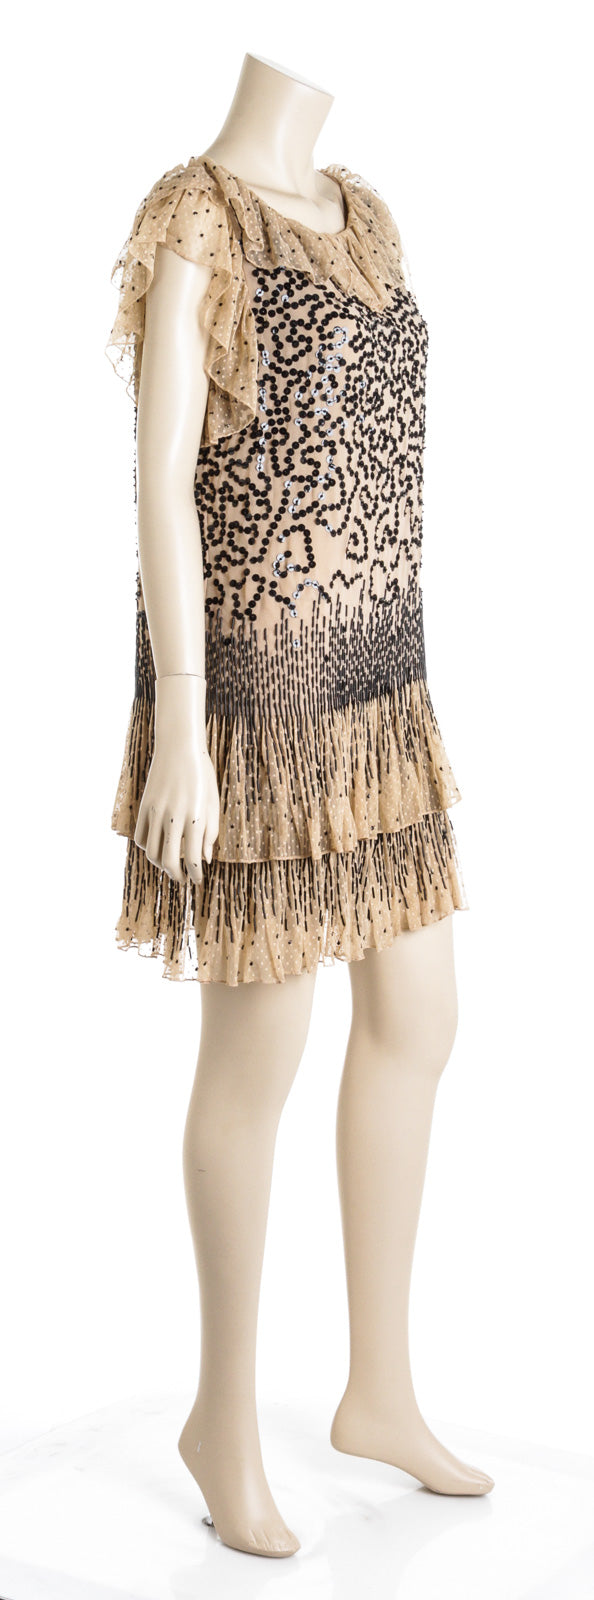 Red Valentino Nude And Black Mesh Sequin Ruffle Neckline Dress Size 10